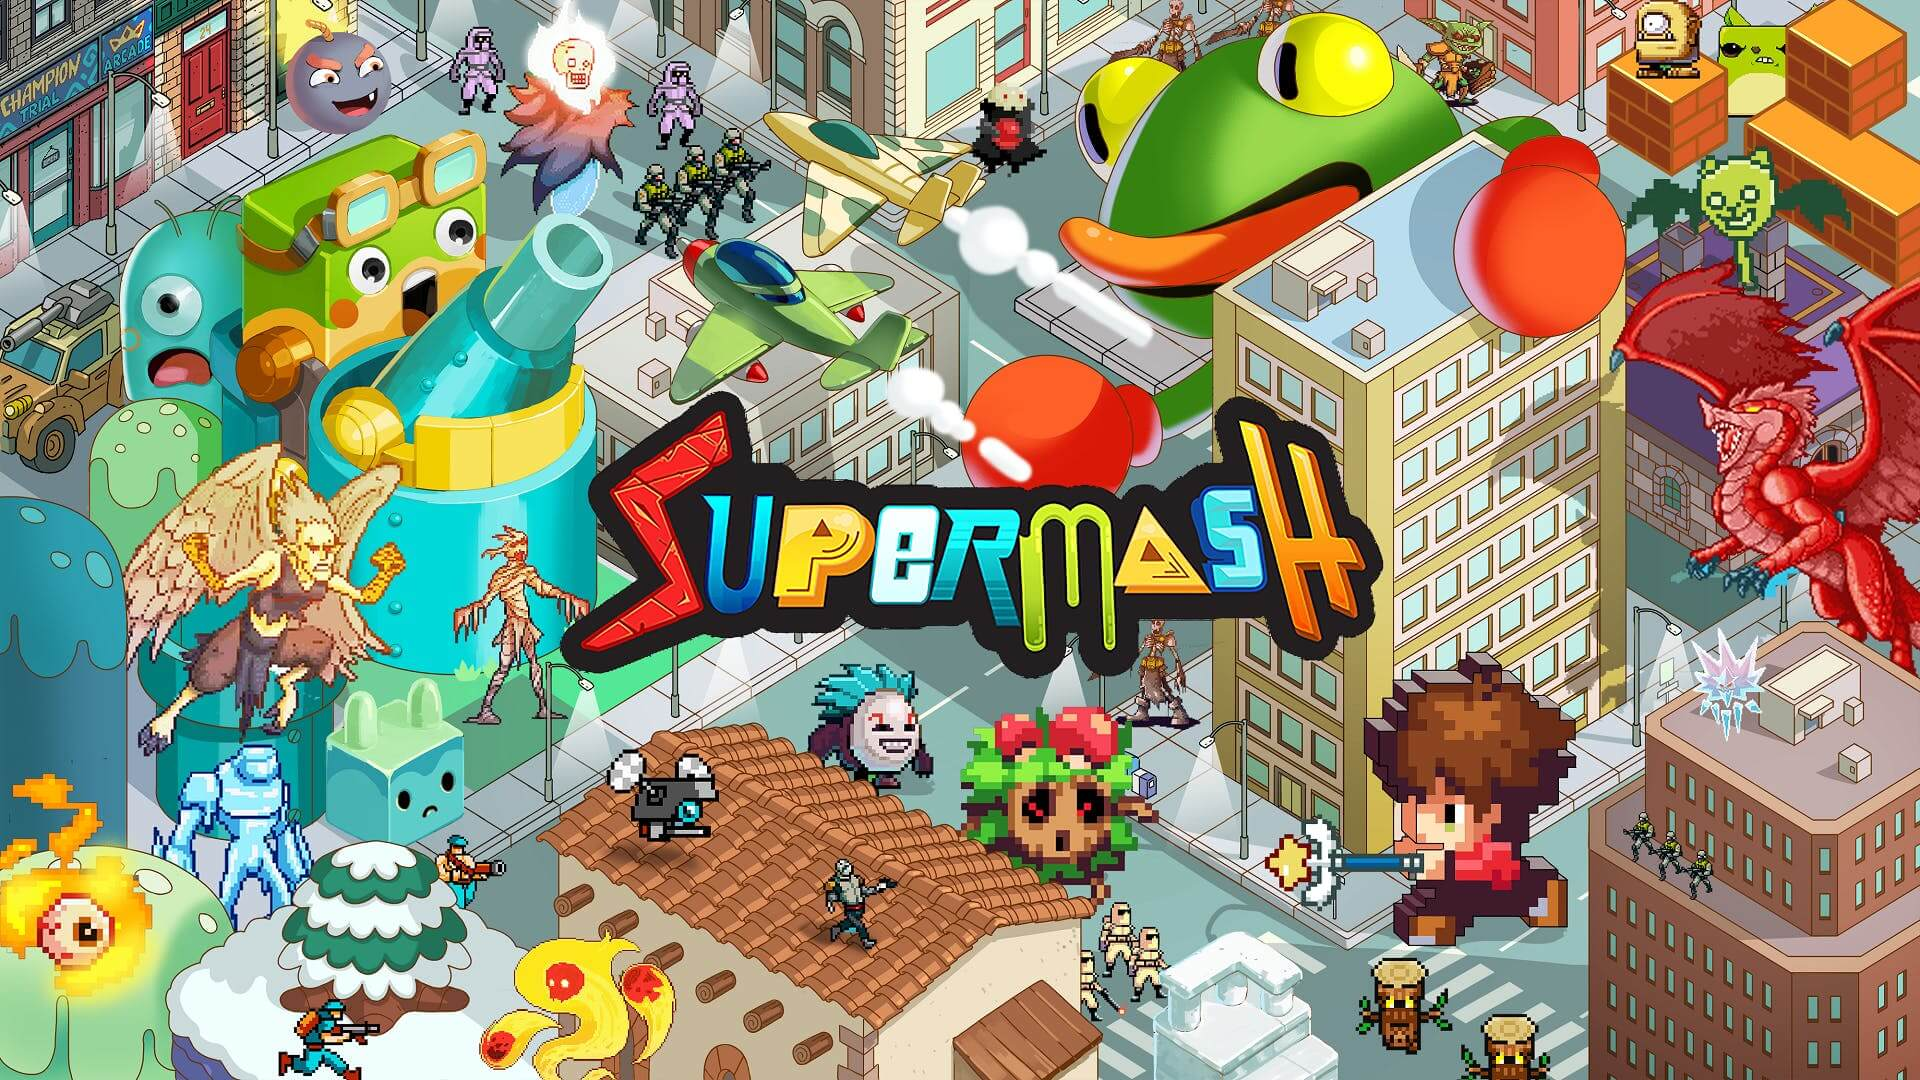 SuperMash is Now Available On Steam